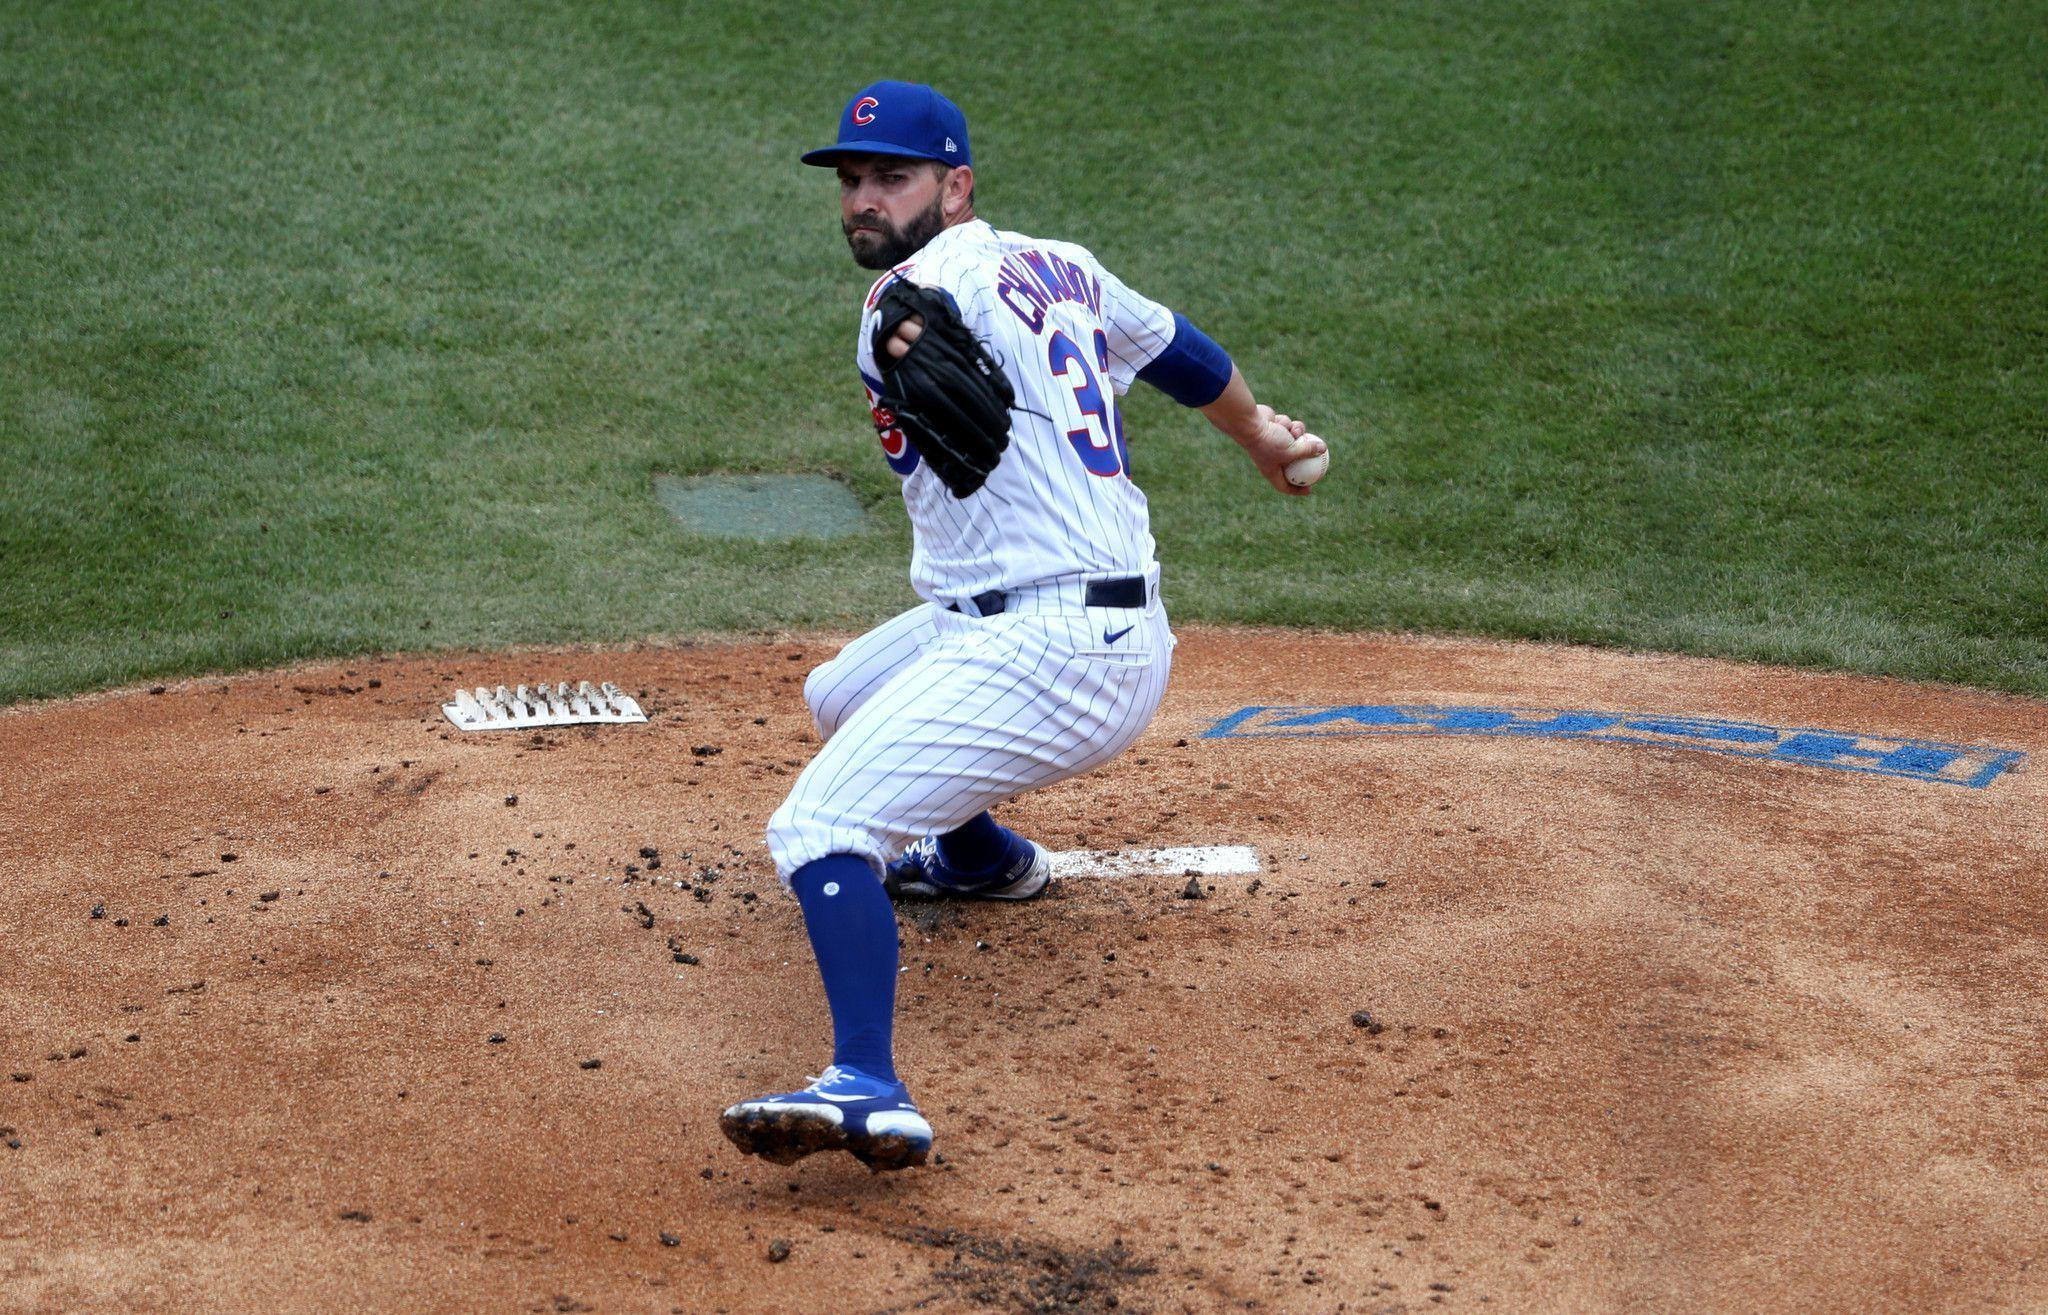 Tyler Chatwood's 6 innings of 3-hit ball vaults the Cubs to a 9-1 win over the Brewers